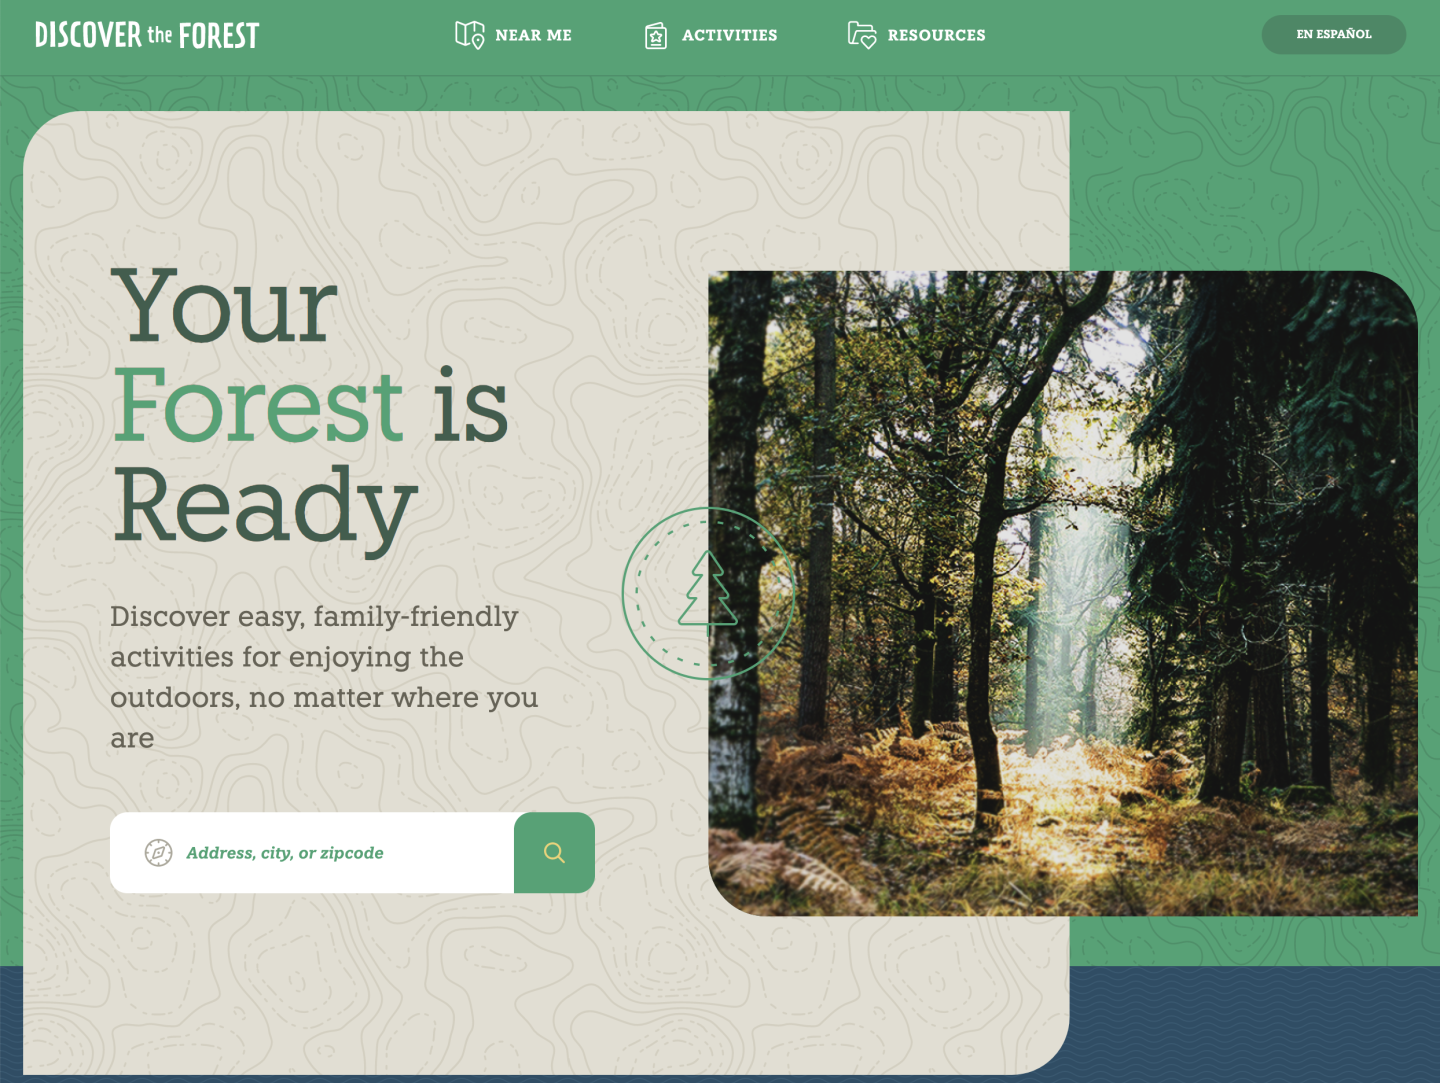 DiscovertheForest.org